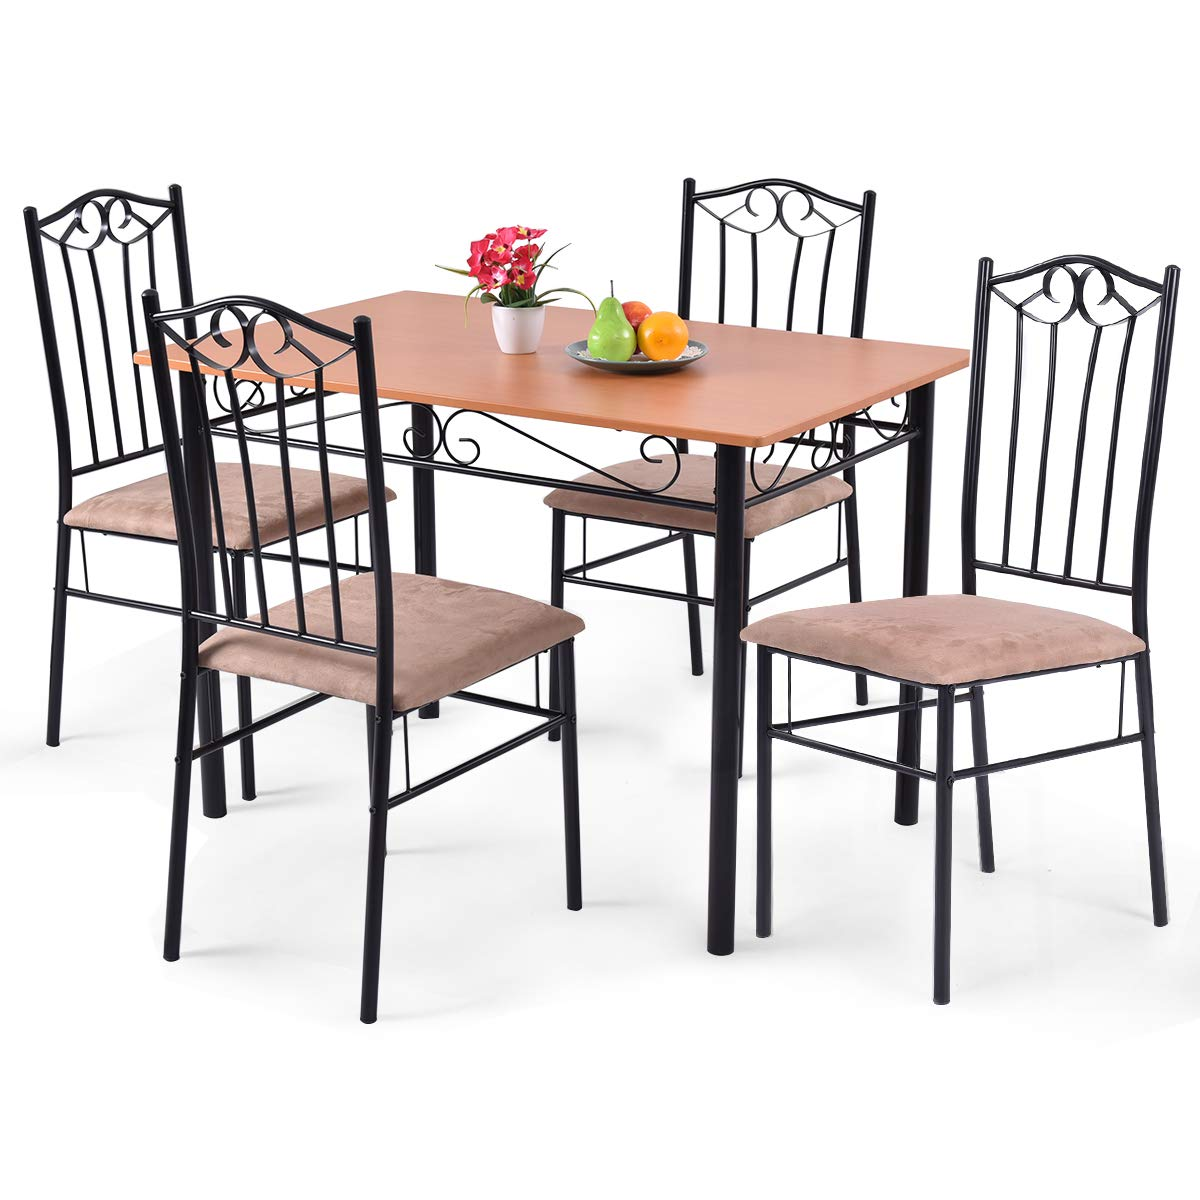 Tangkula 5 Piece Dining Table Set Vintage Wood Top Padded Seat Dining Table and Chairs Set Home Kitchen Dining Room Furniture by Tangkula